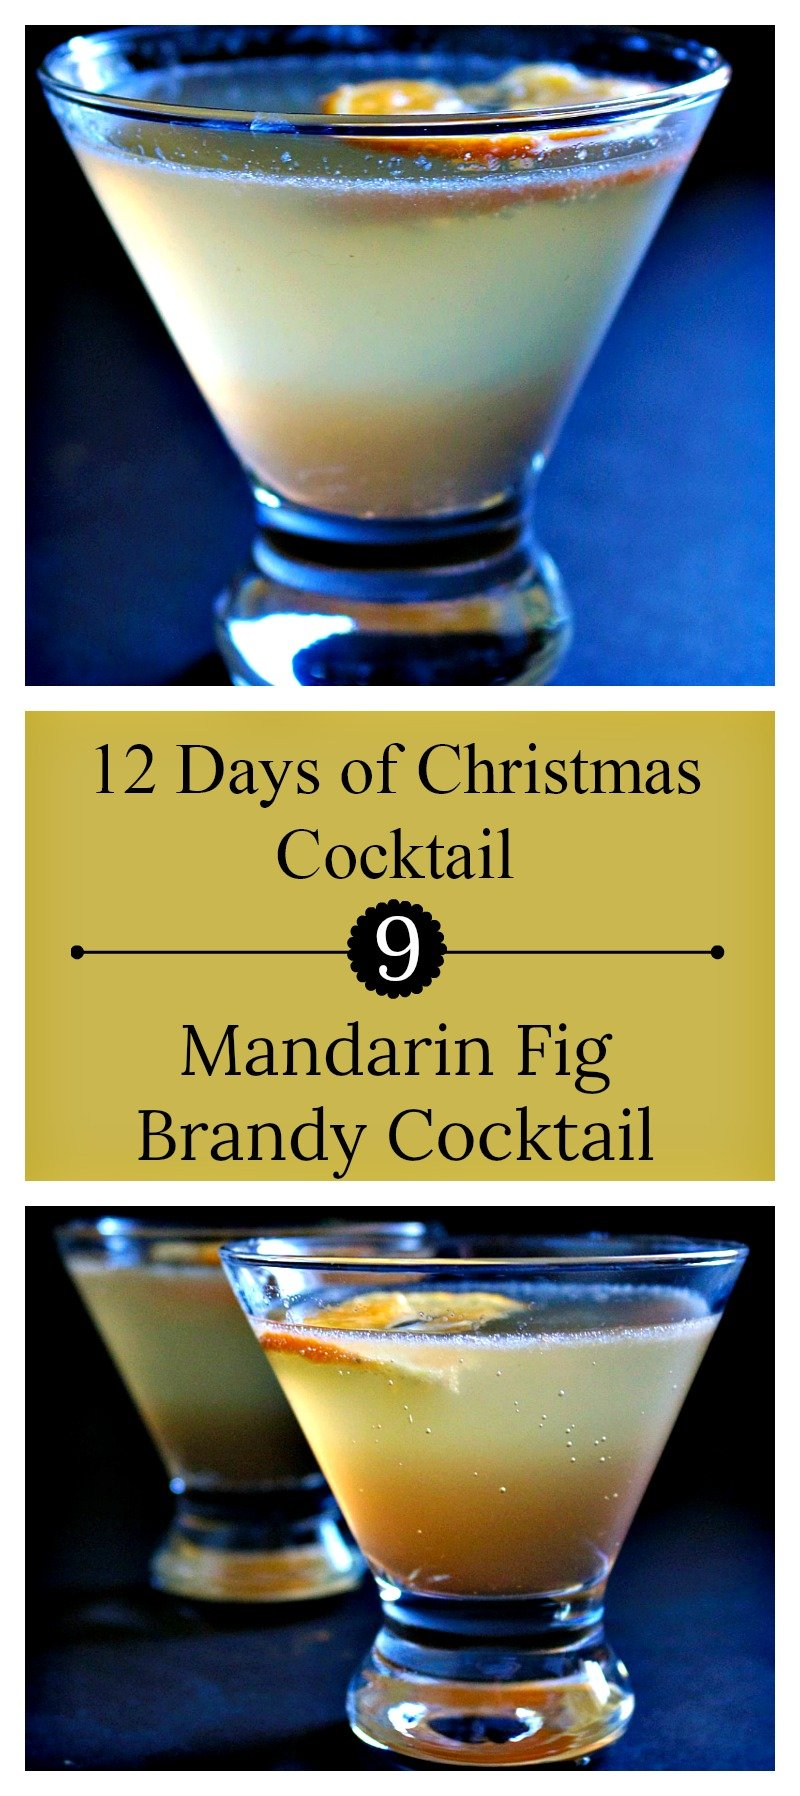 Mandarin Fig Brandy Cocktail | Christmas figgy pudding in a cocktail with mandarin juice, fig preserves, and brandy.